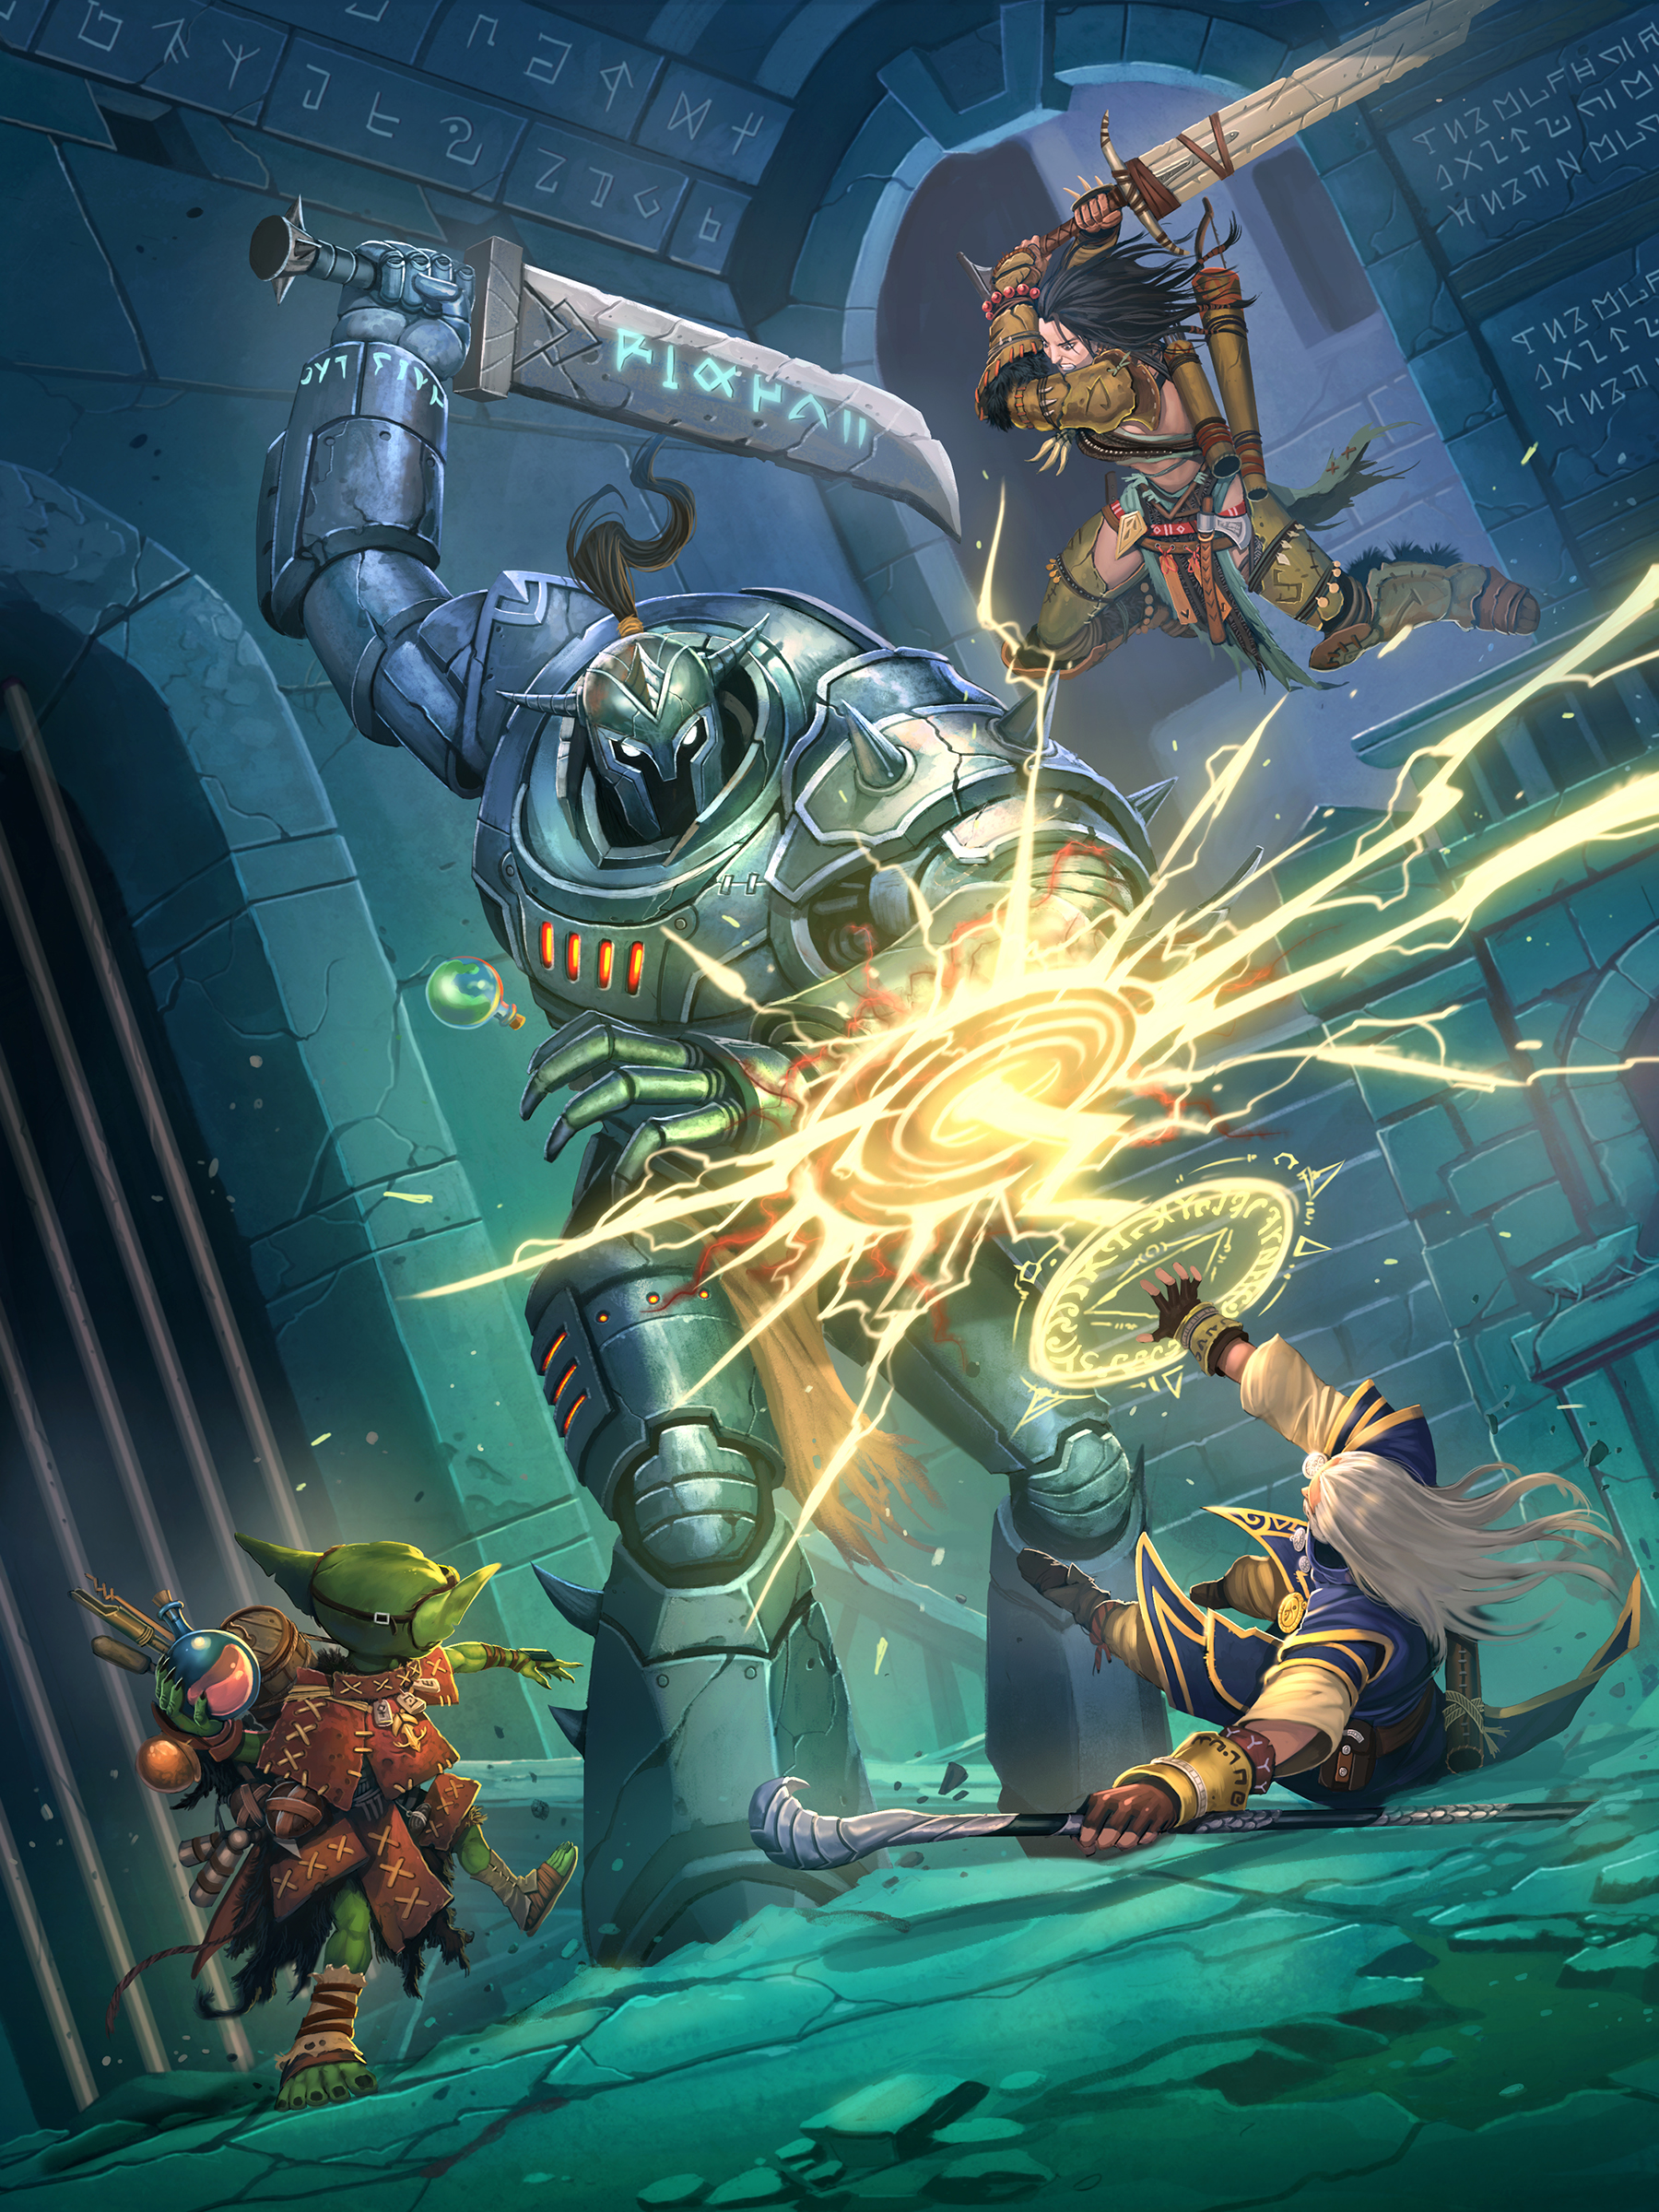 Pathfinder 2e review: Dungeons & Dragons' biggest competitor comes into its own